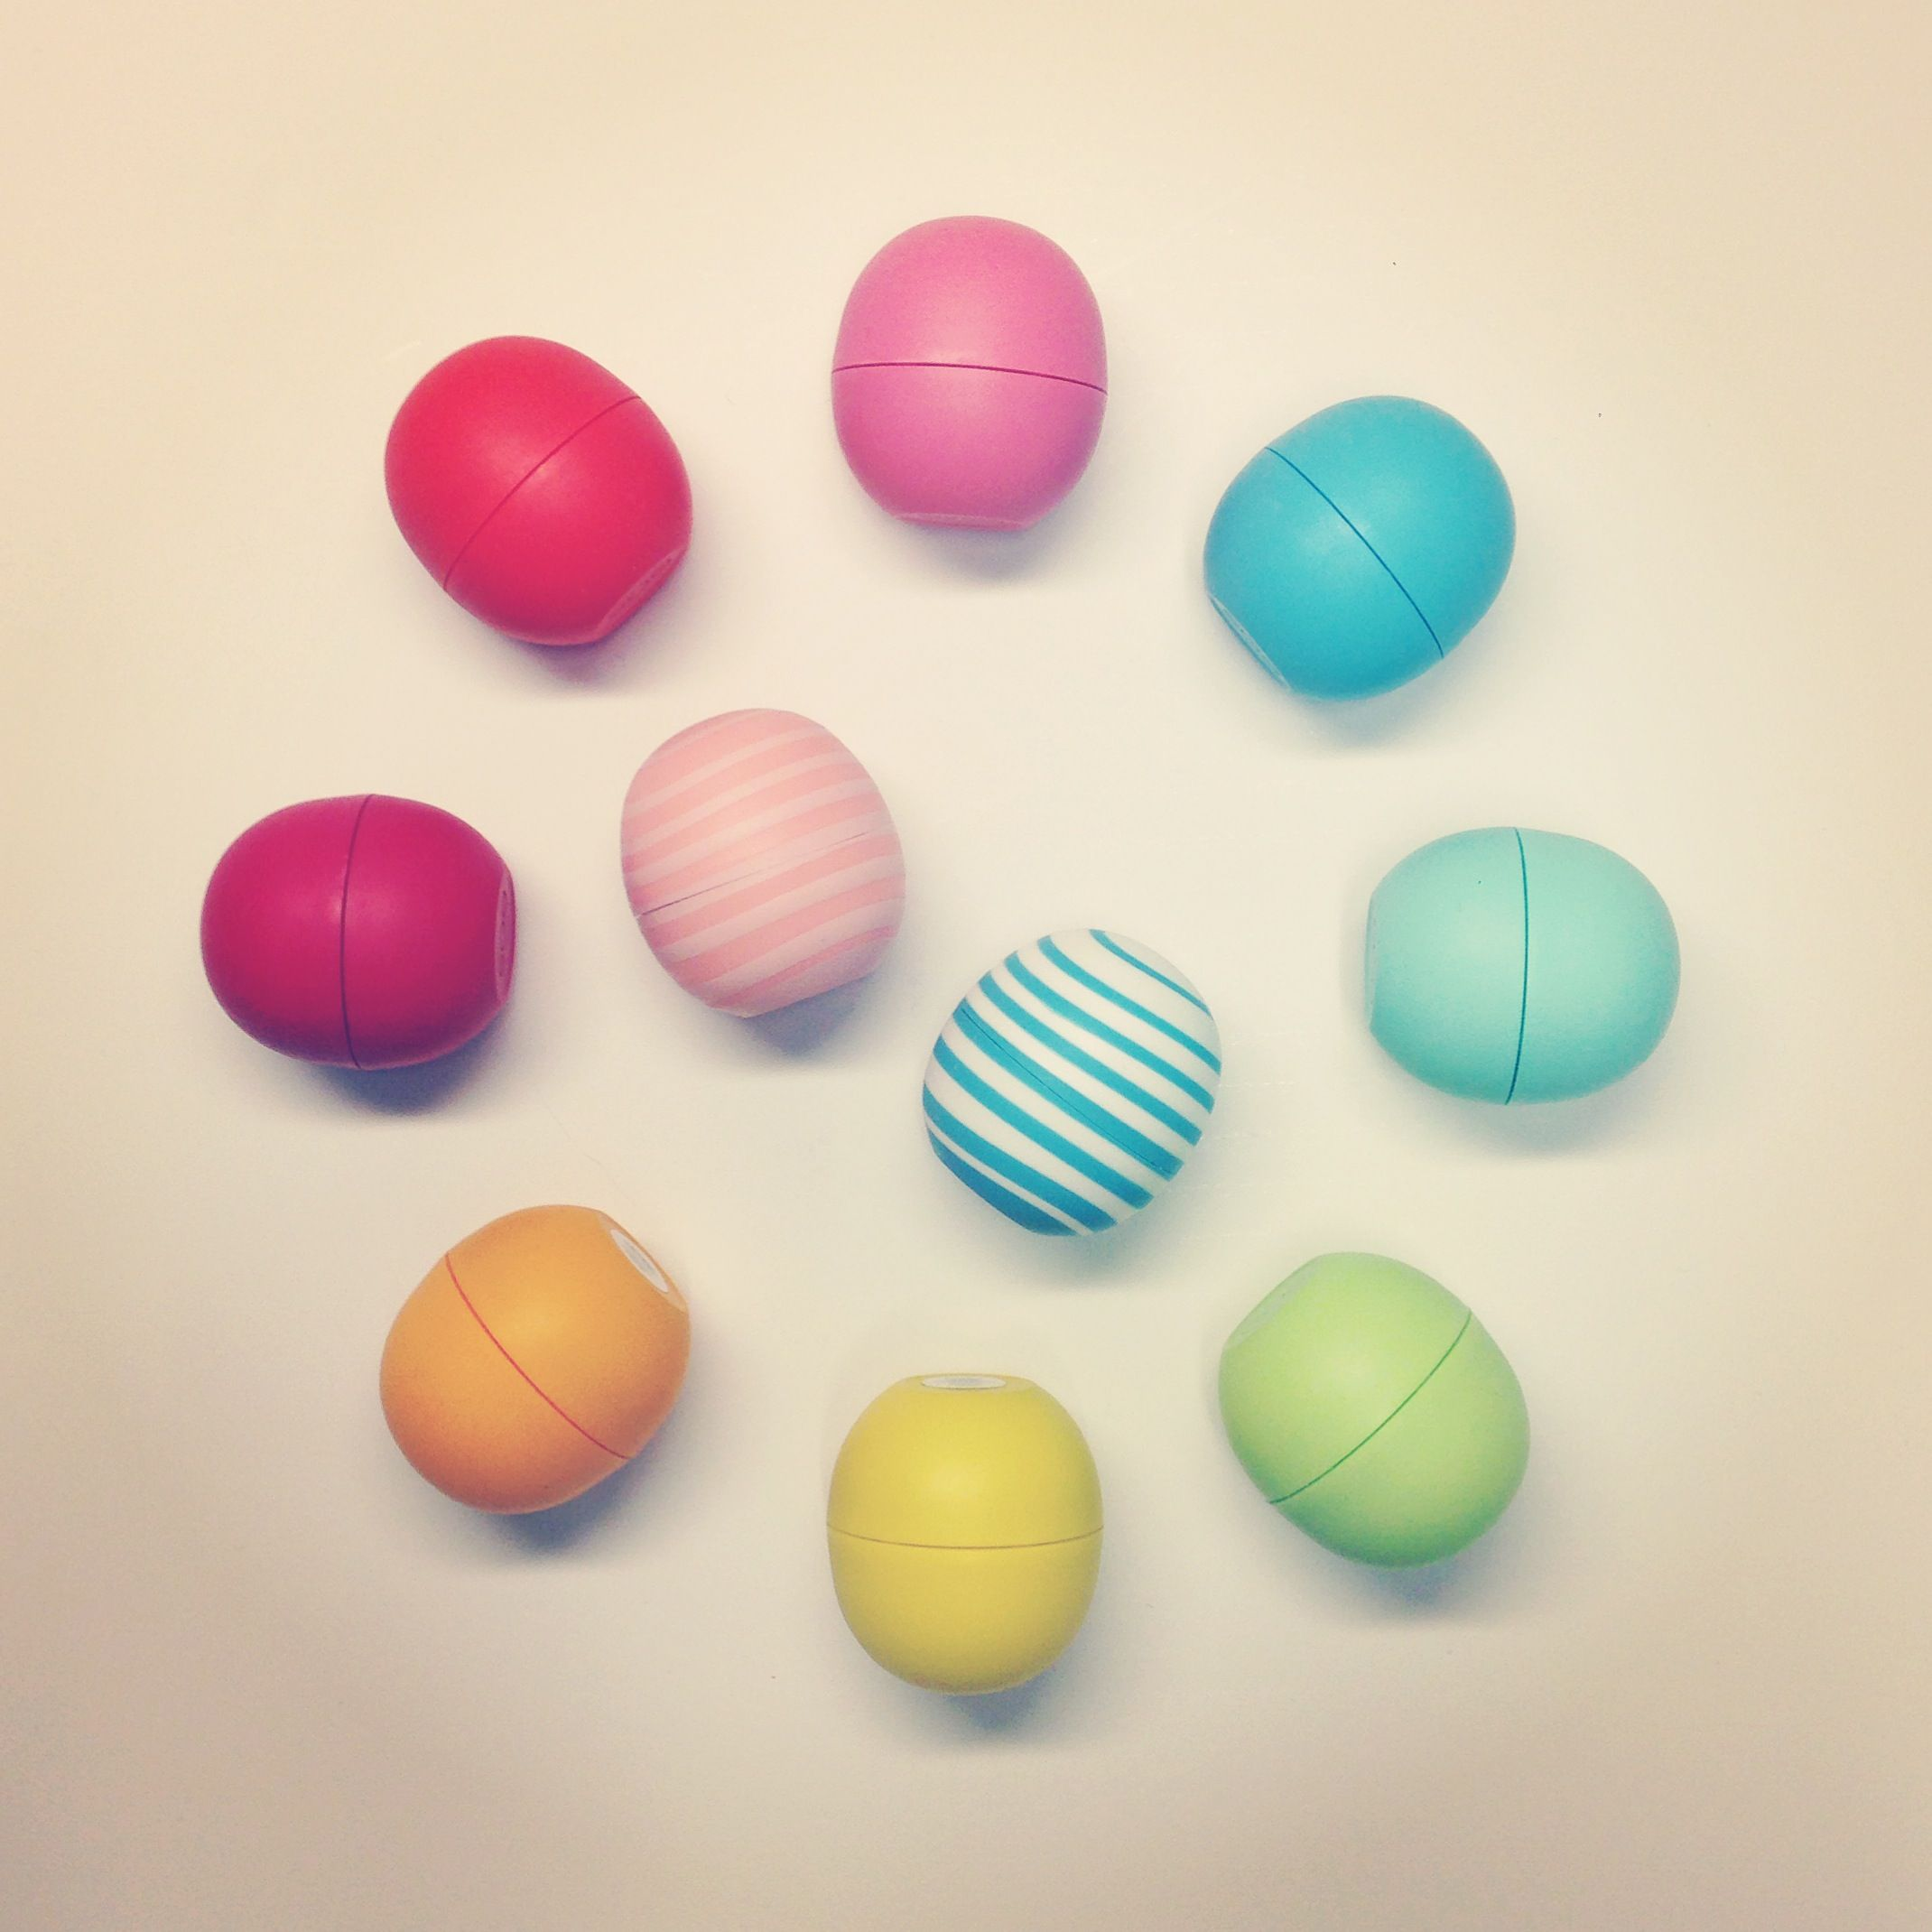 Like if you've got (or covet) the whole #EOS rainbow! Get new Vanilla Mint and Coconut Milk in Kohl's stores now.